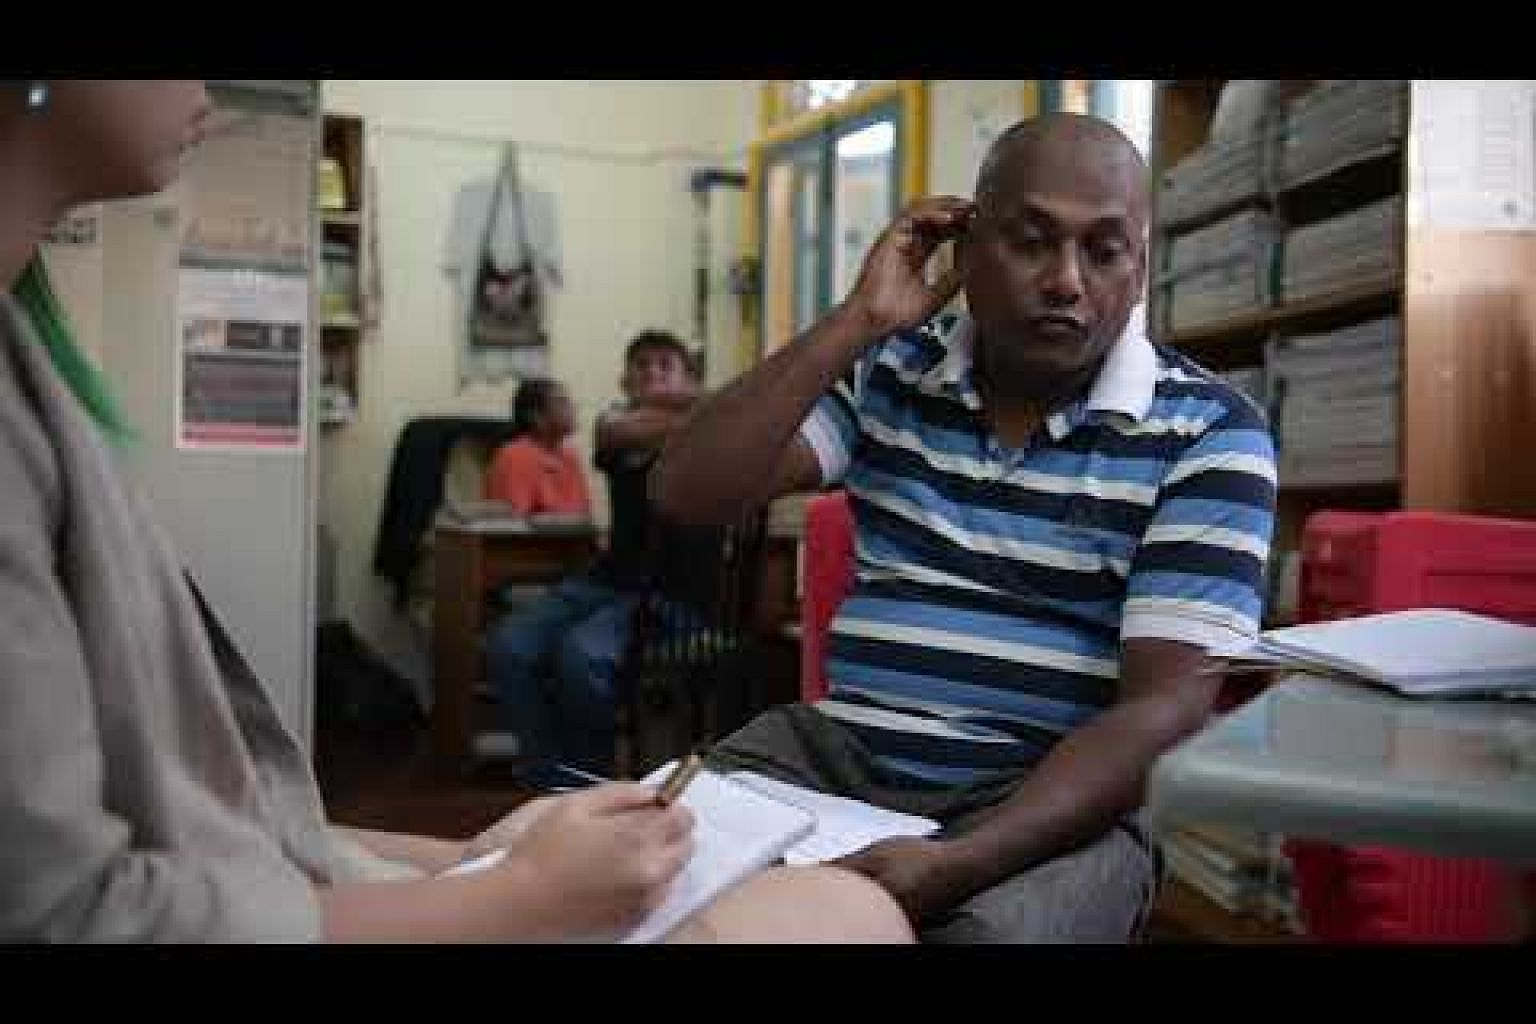 Hasan Mehedi, a Bangladeshi foreign worker, speaks to ST about the salary dispute